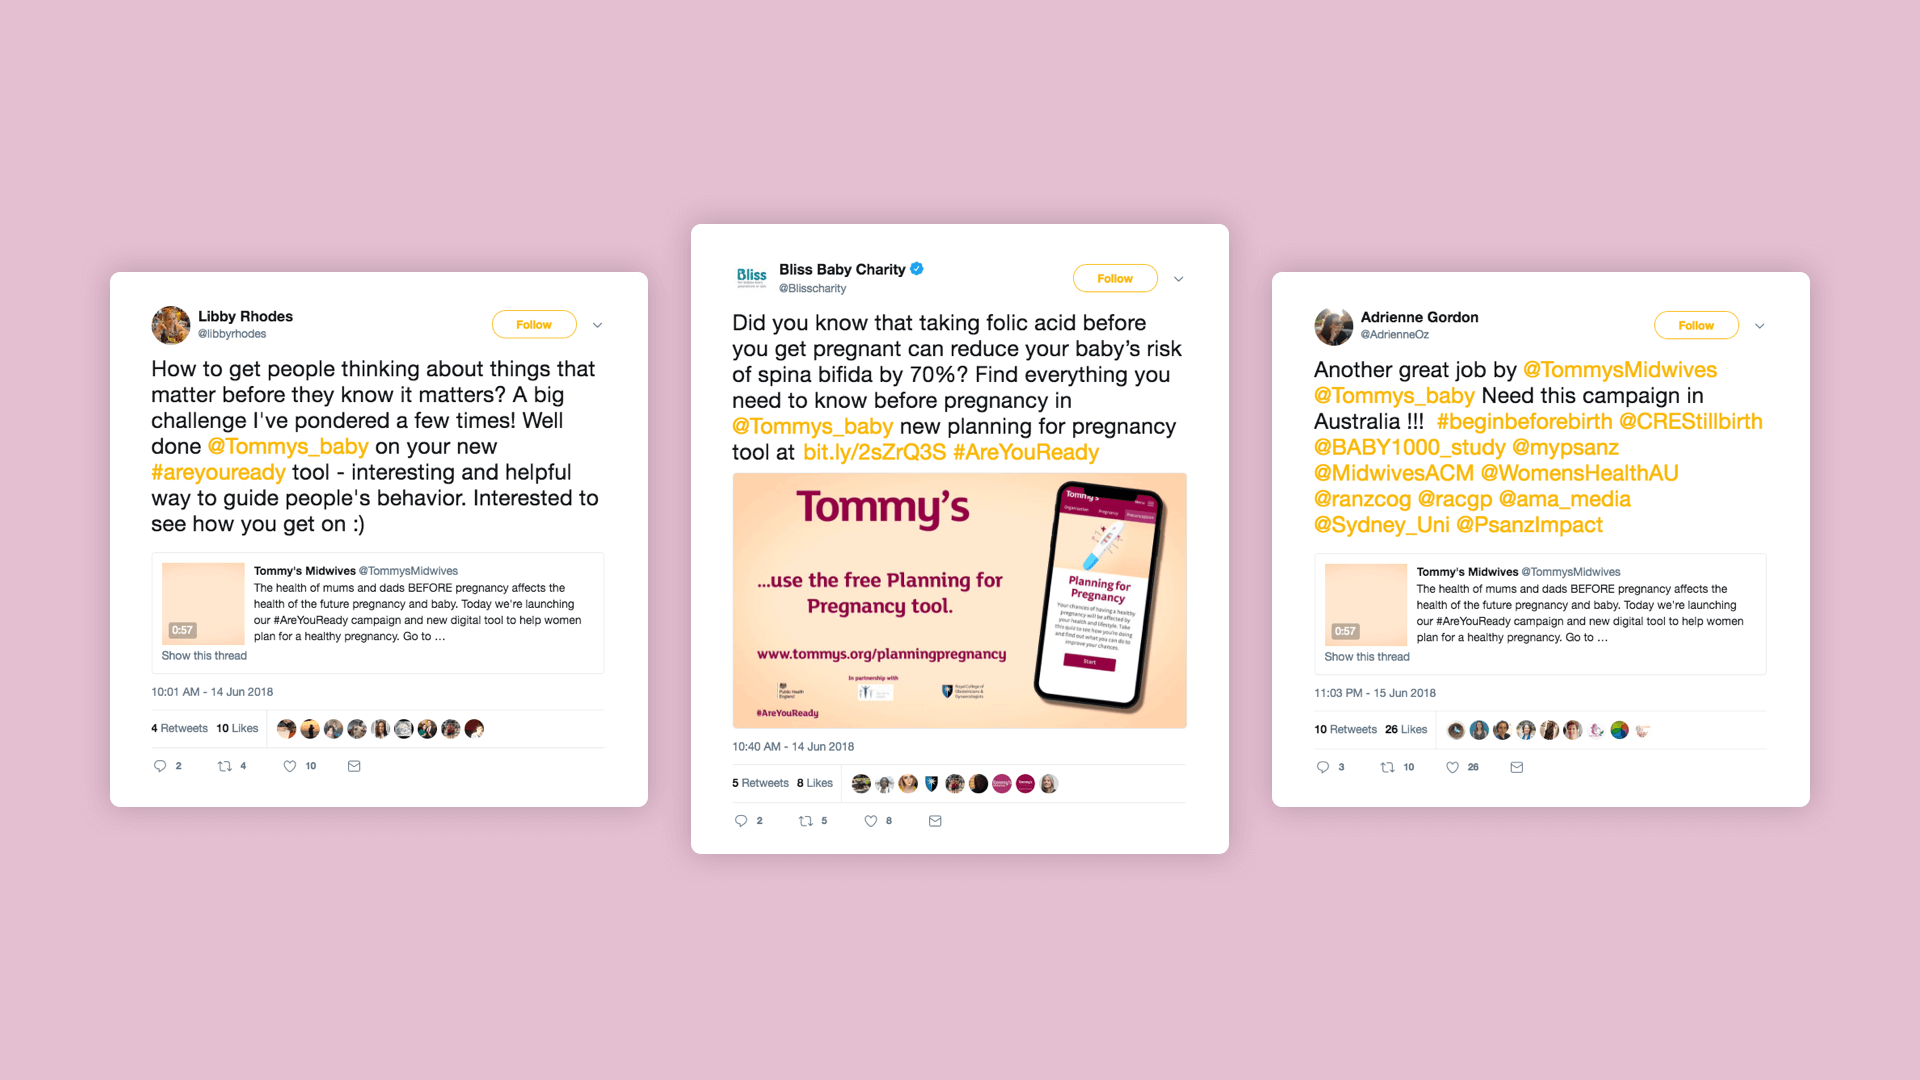 Website design of twitter tweet for charity company Tommy's